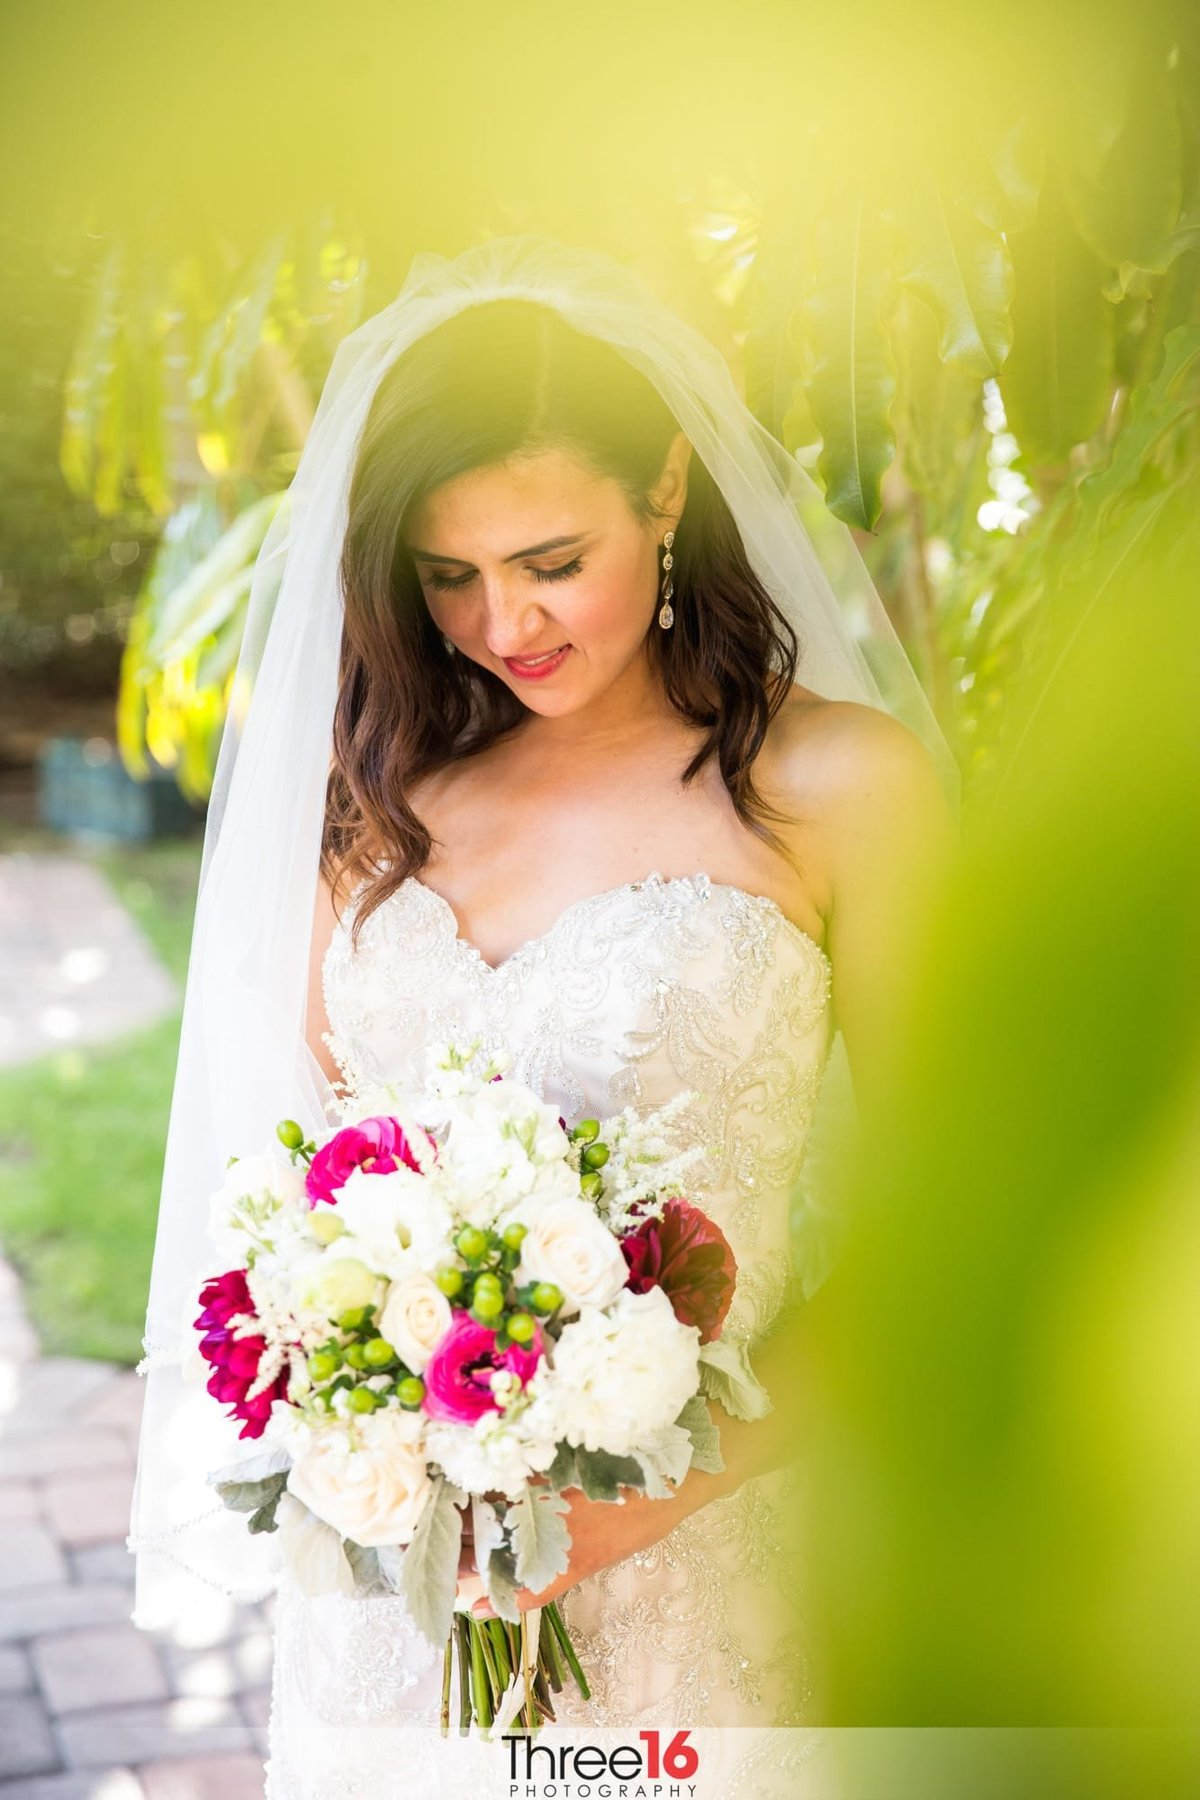 Gorgeous Bride posing with her bouquet